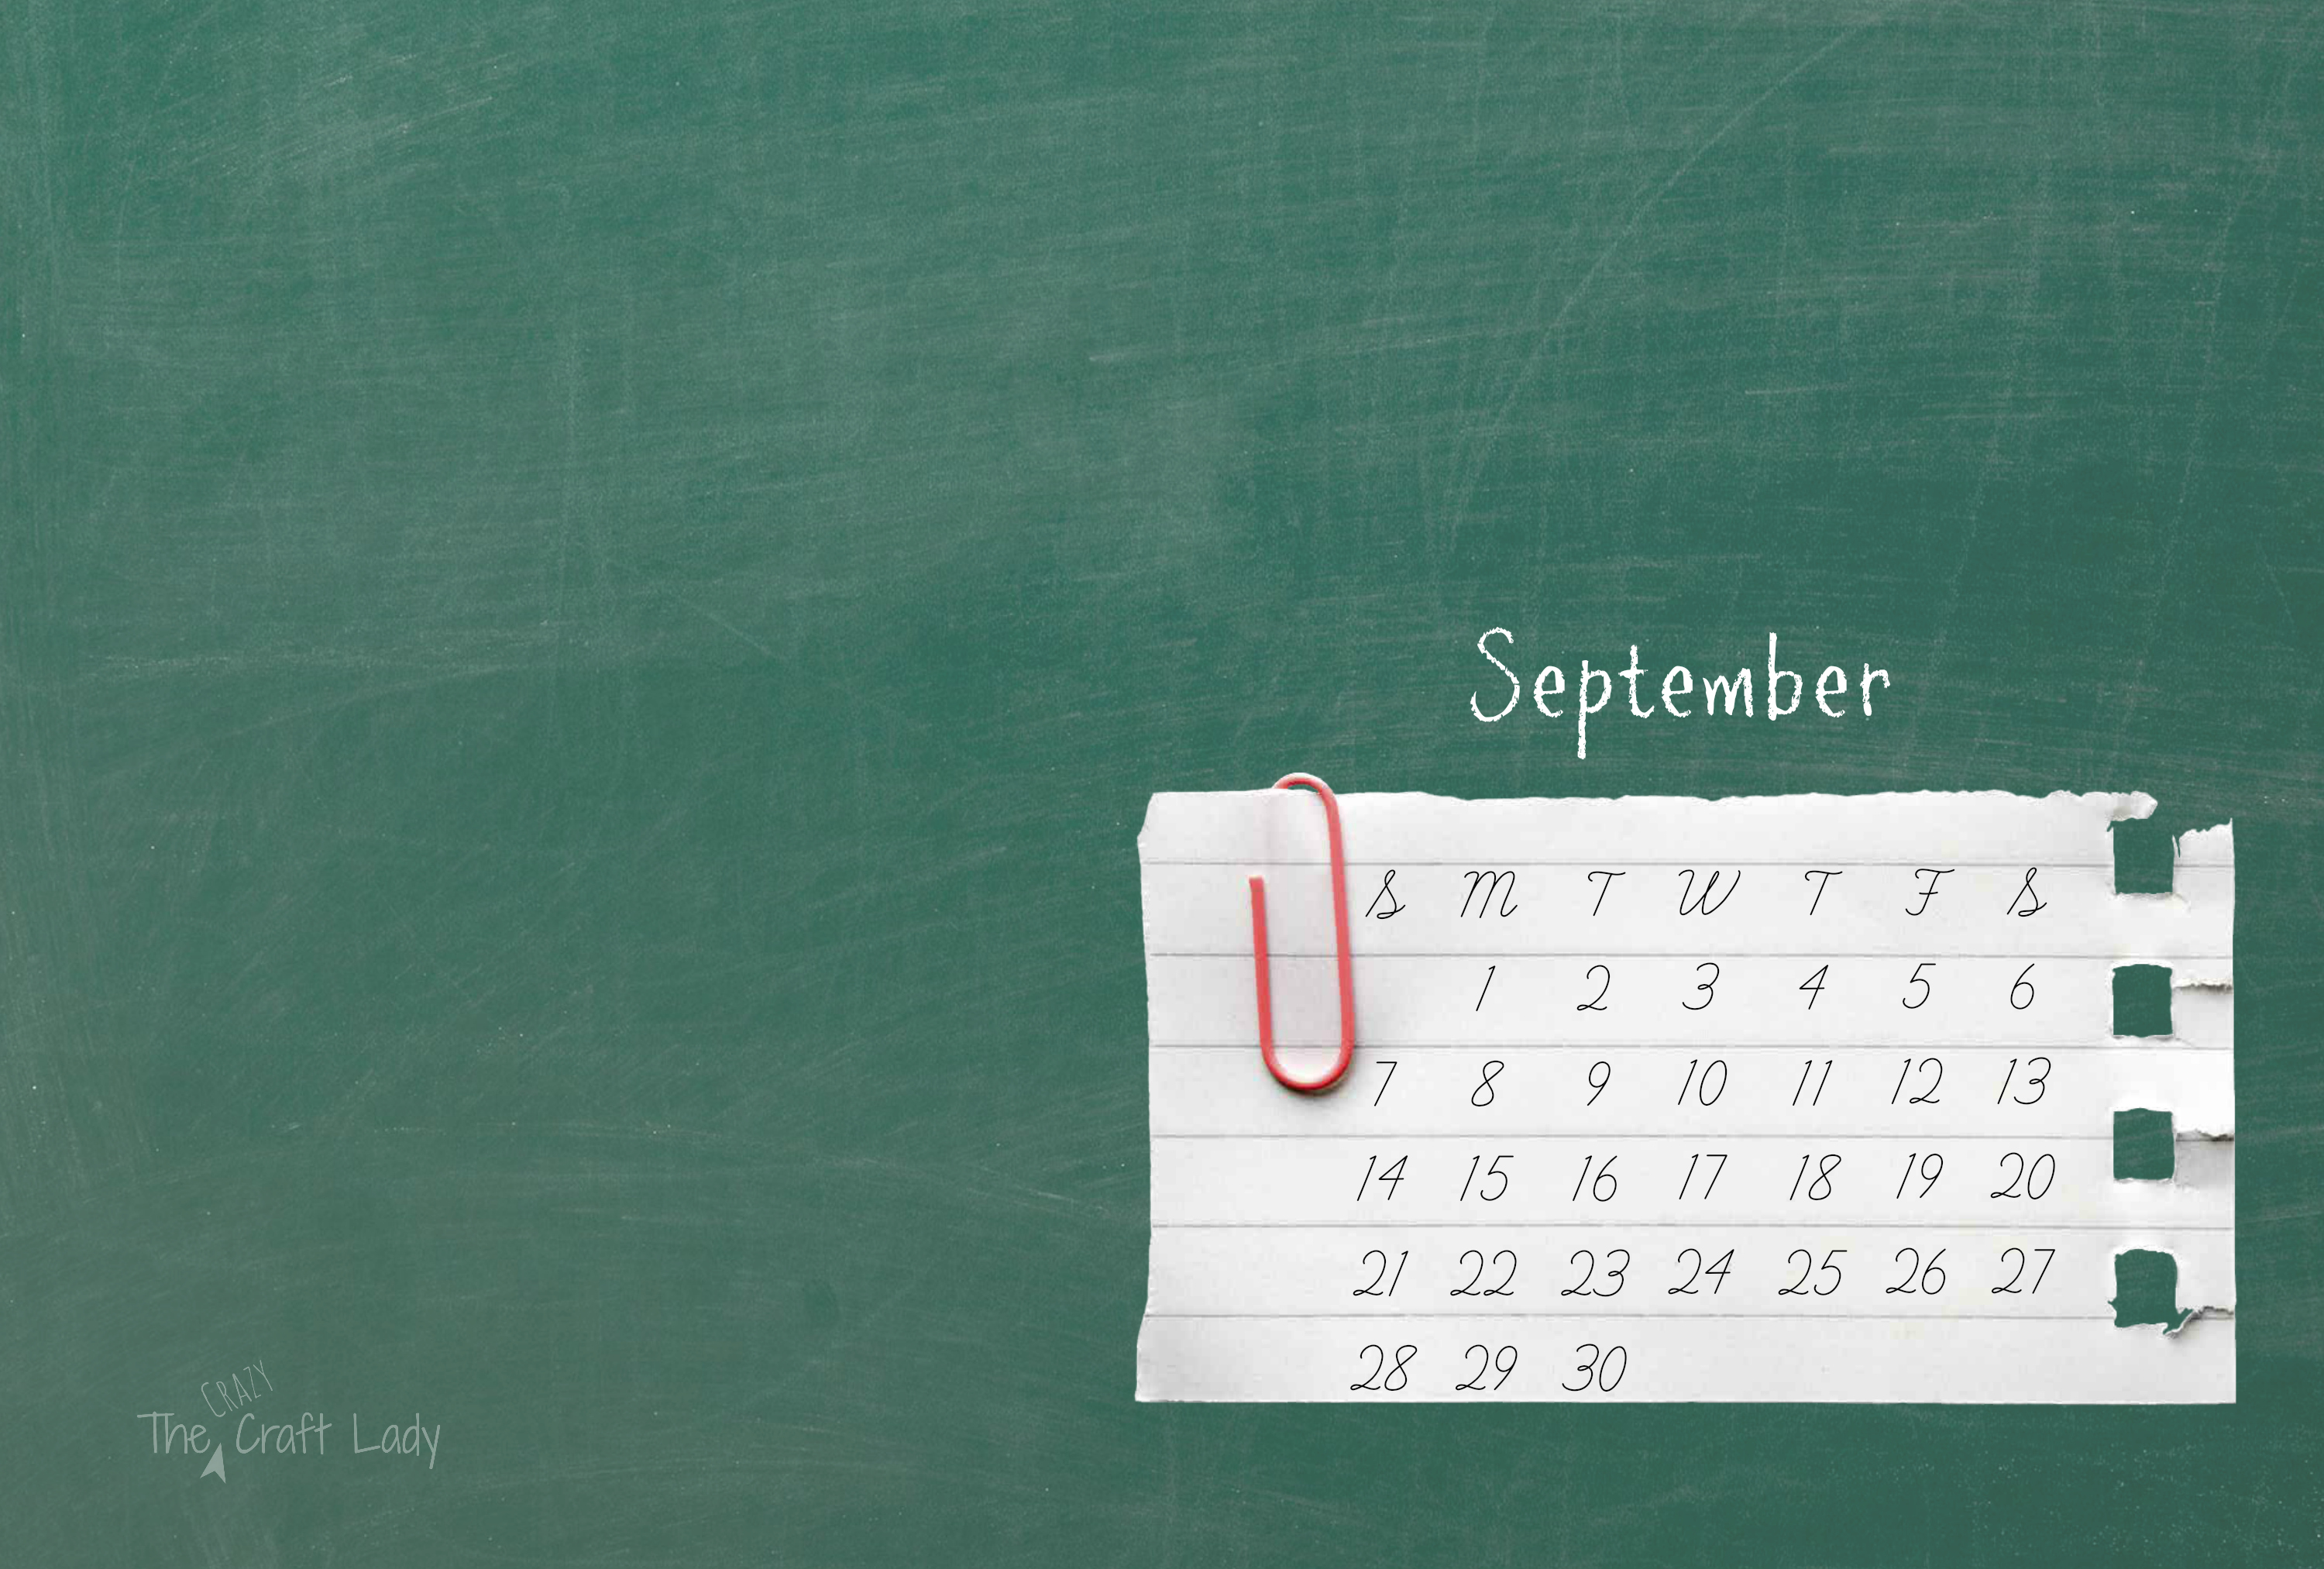 September 2014 Desktop Calendar   The Crazy Craft Lady 3000x2025